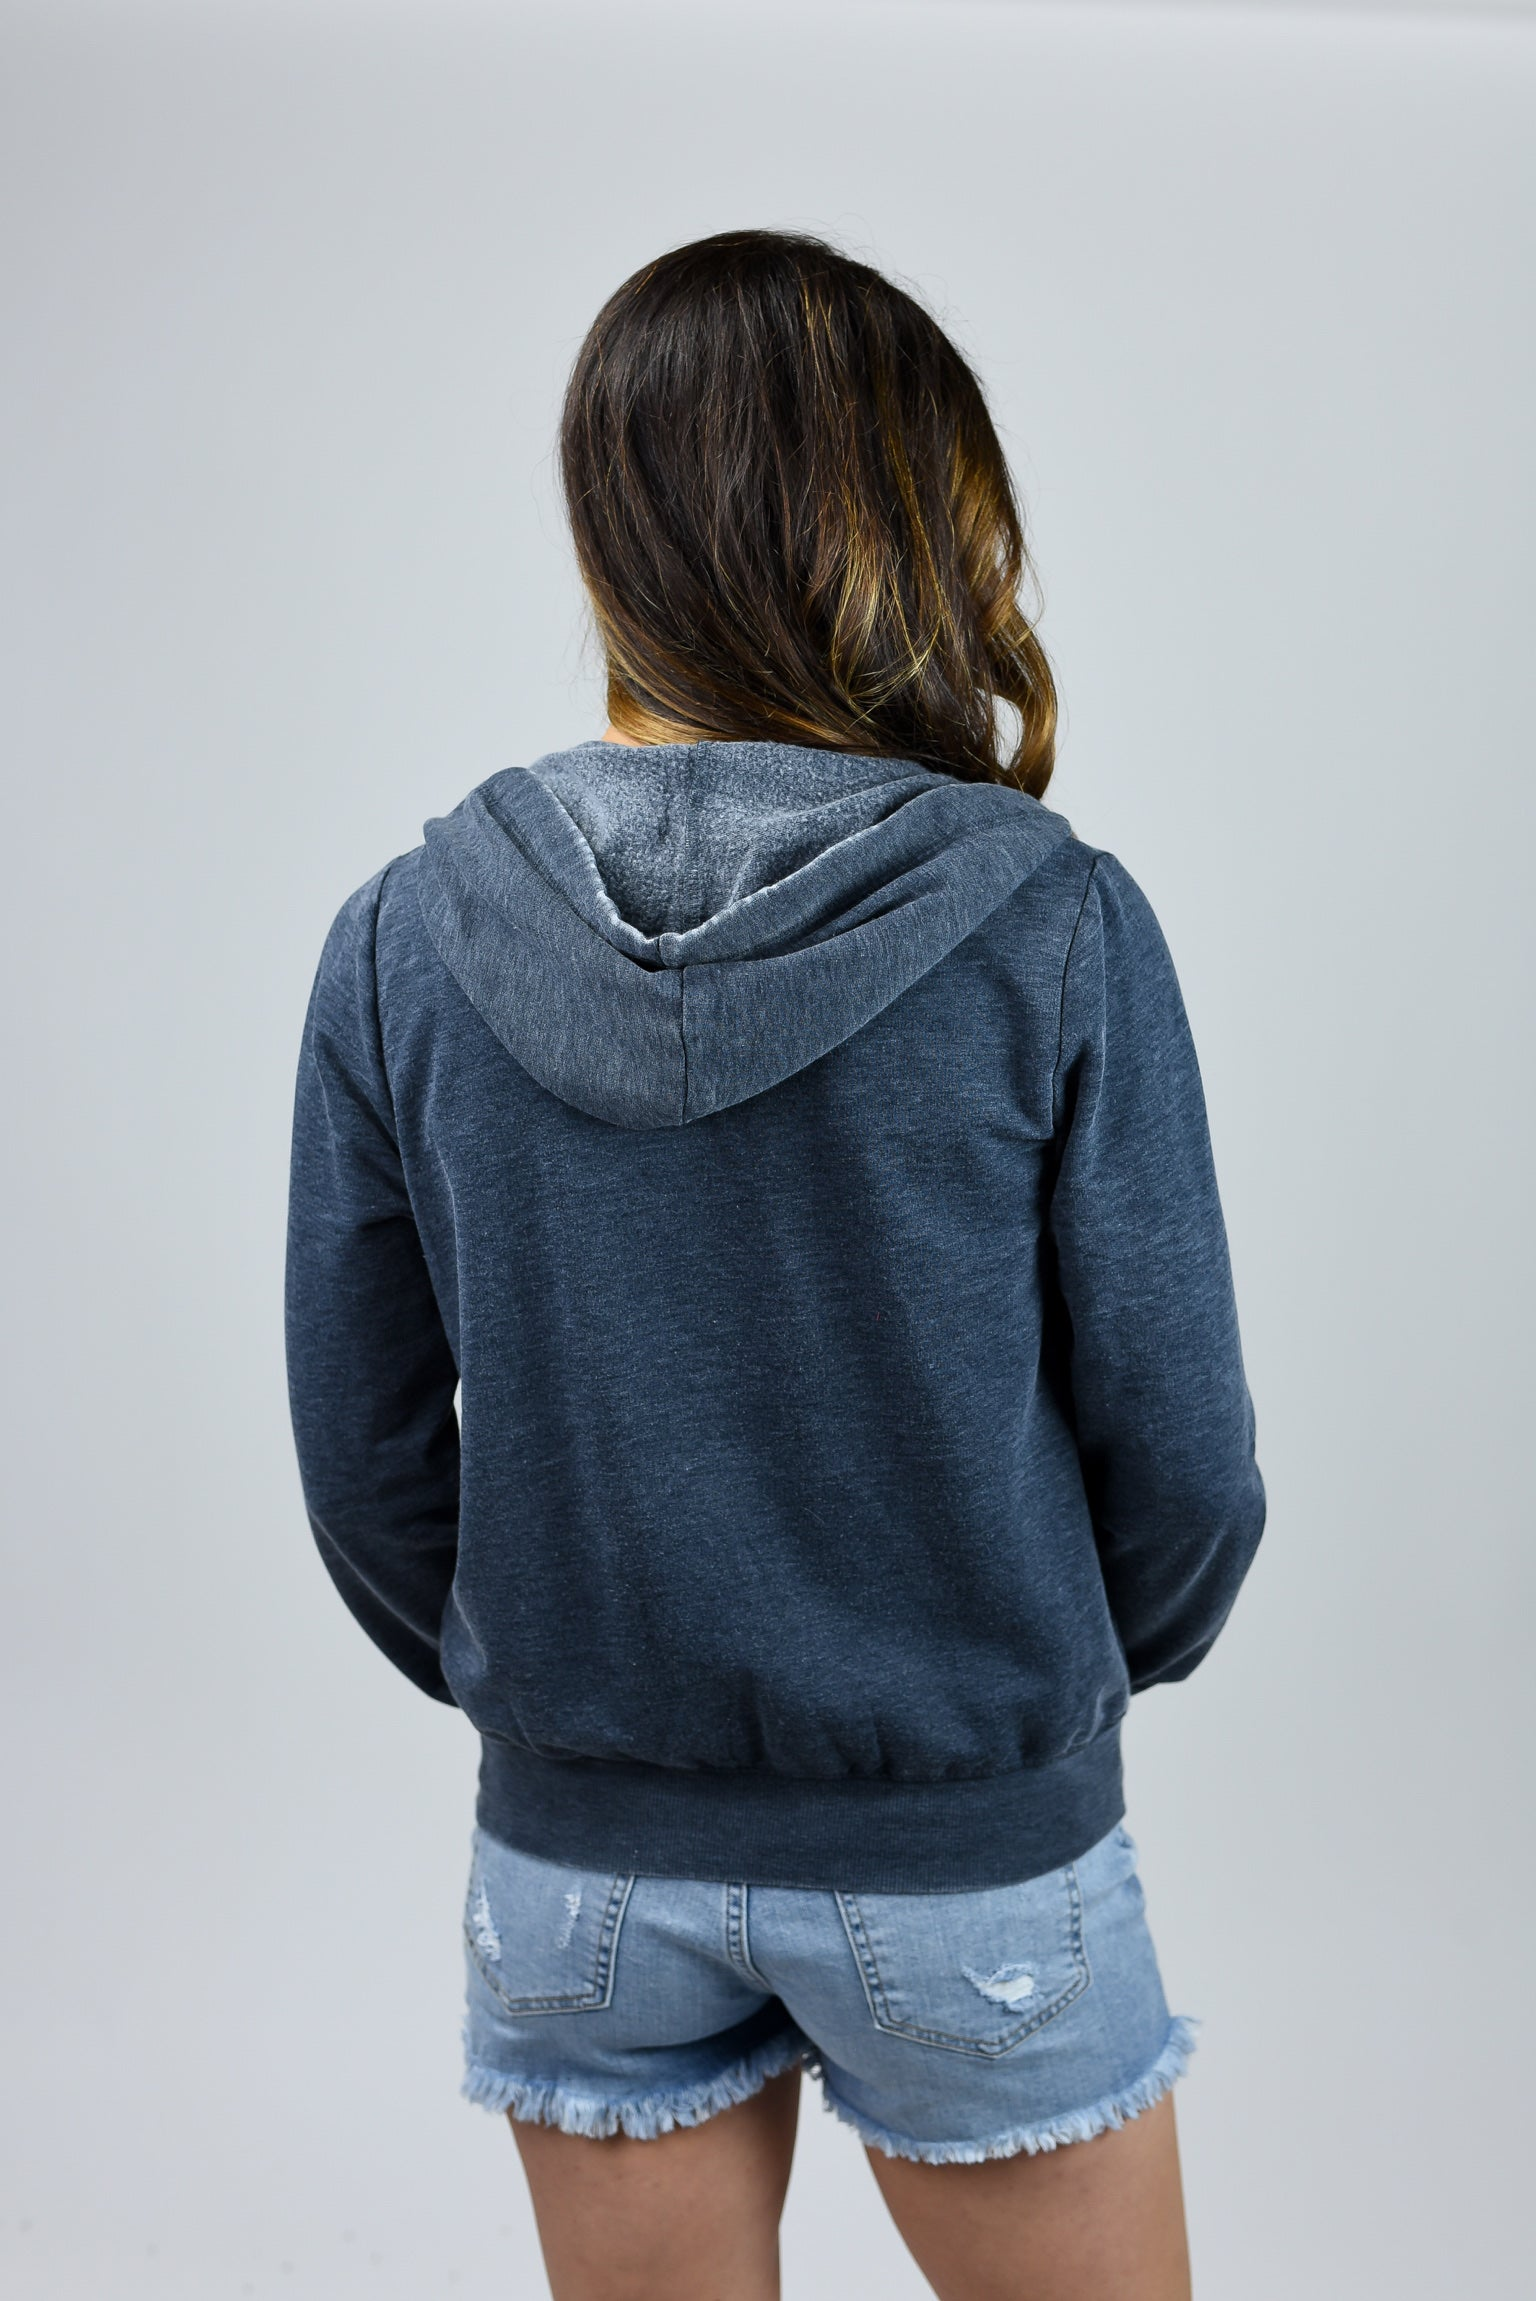 Bonfire Babe Zip Up Navy Hoodie